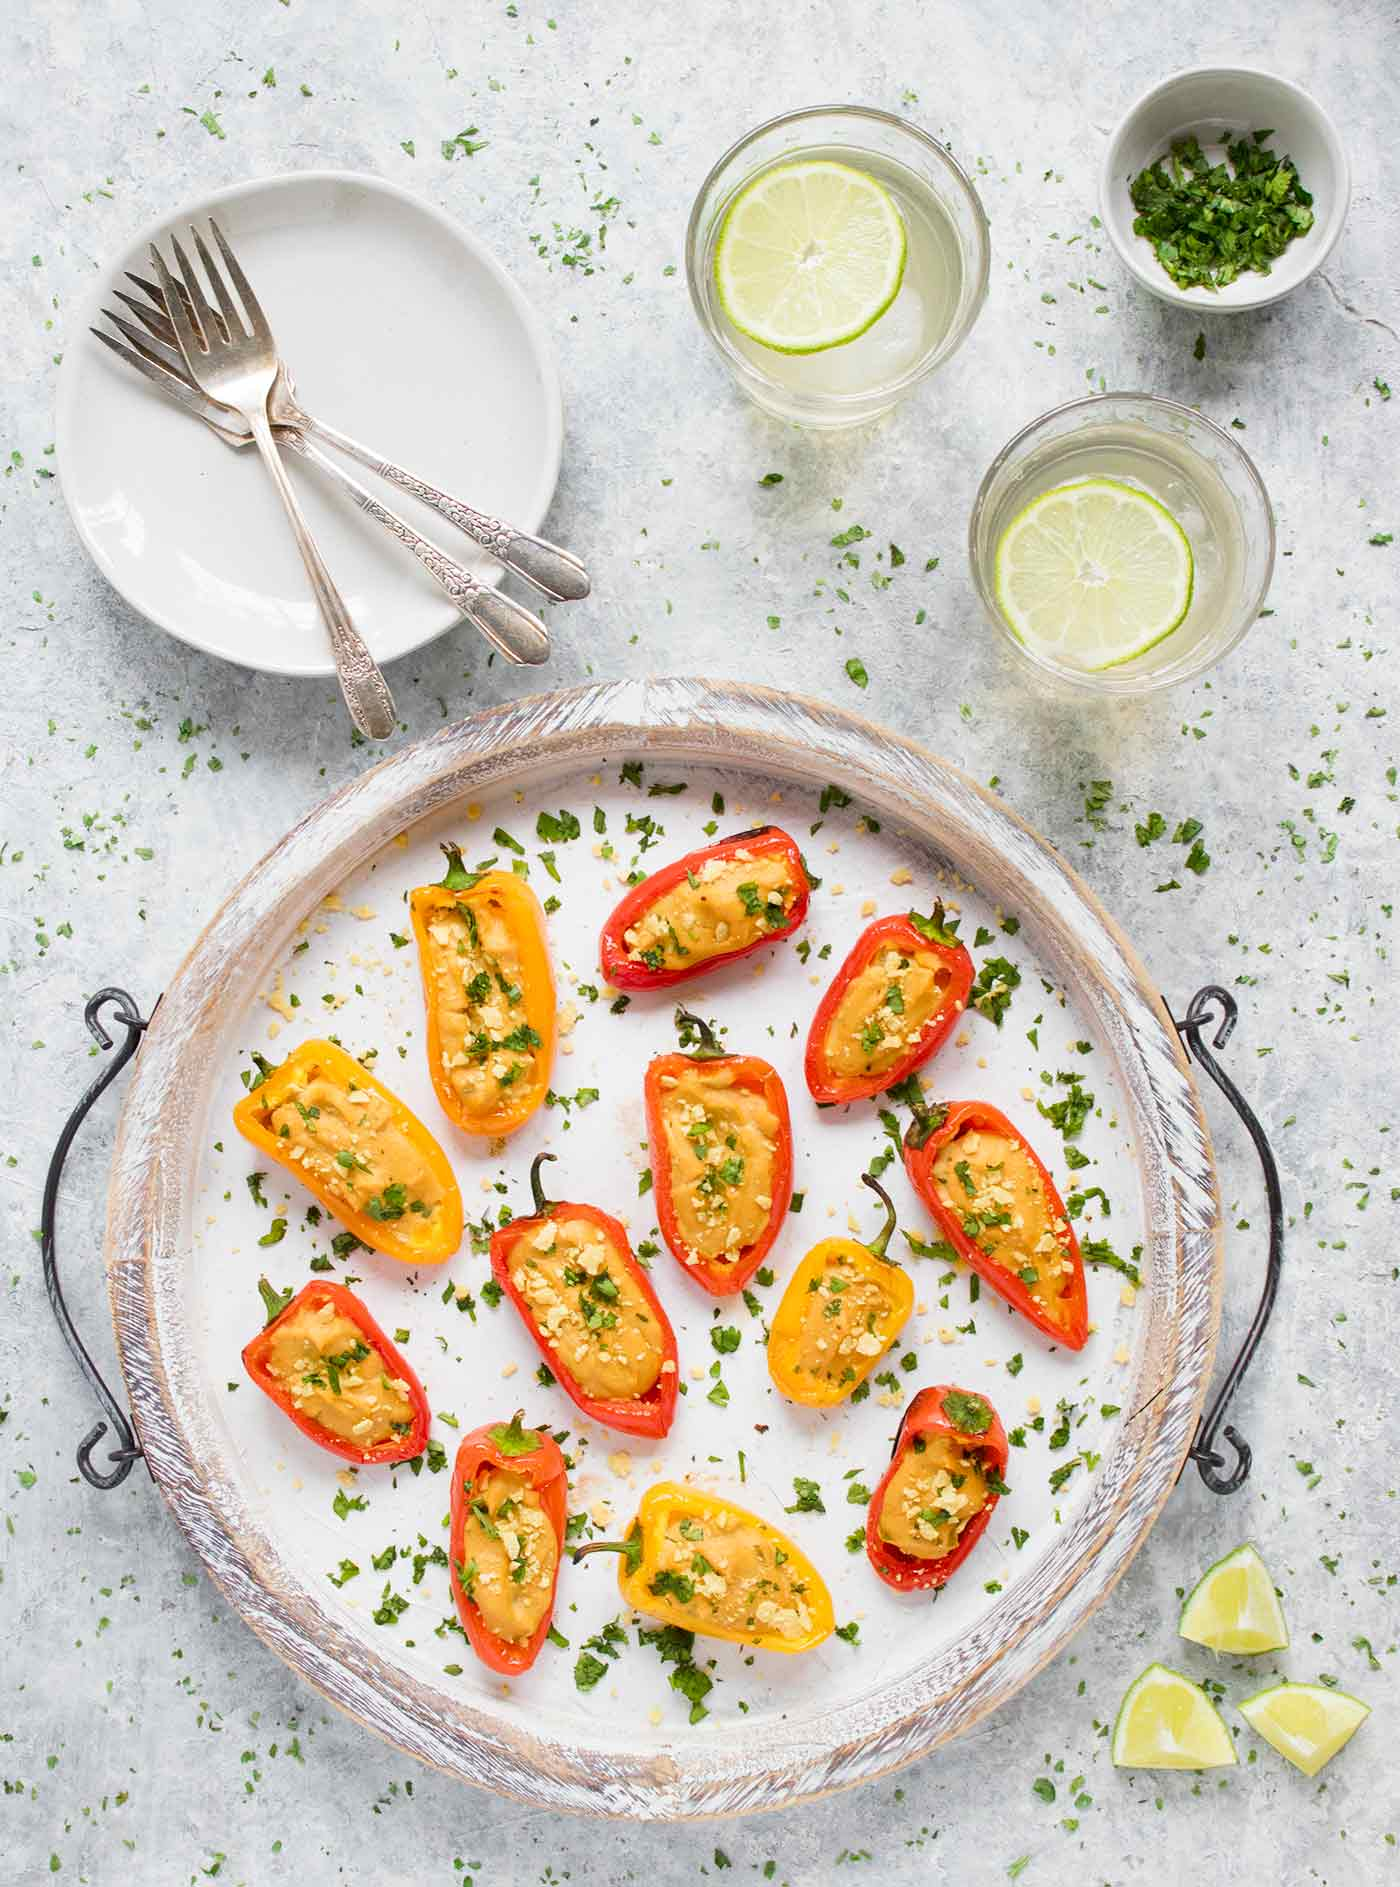 Vegan queso stuffed mini peppers on a large white serving tray, with margaritas